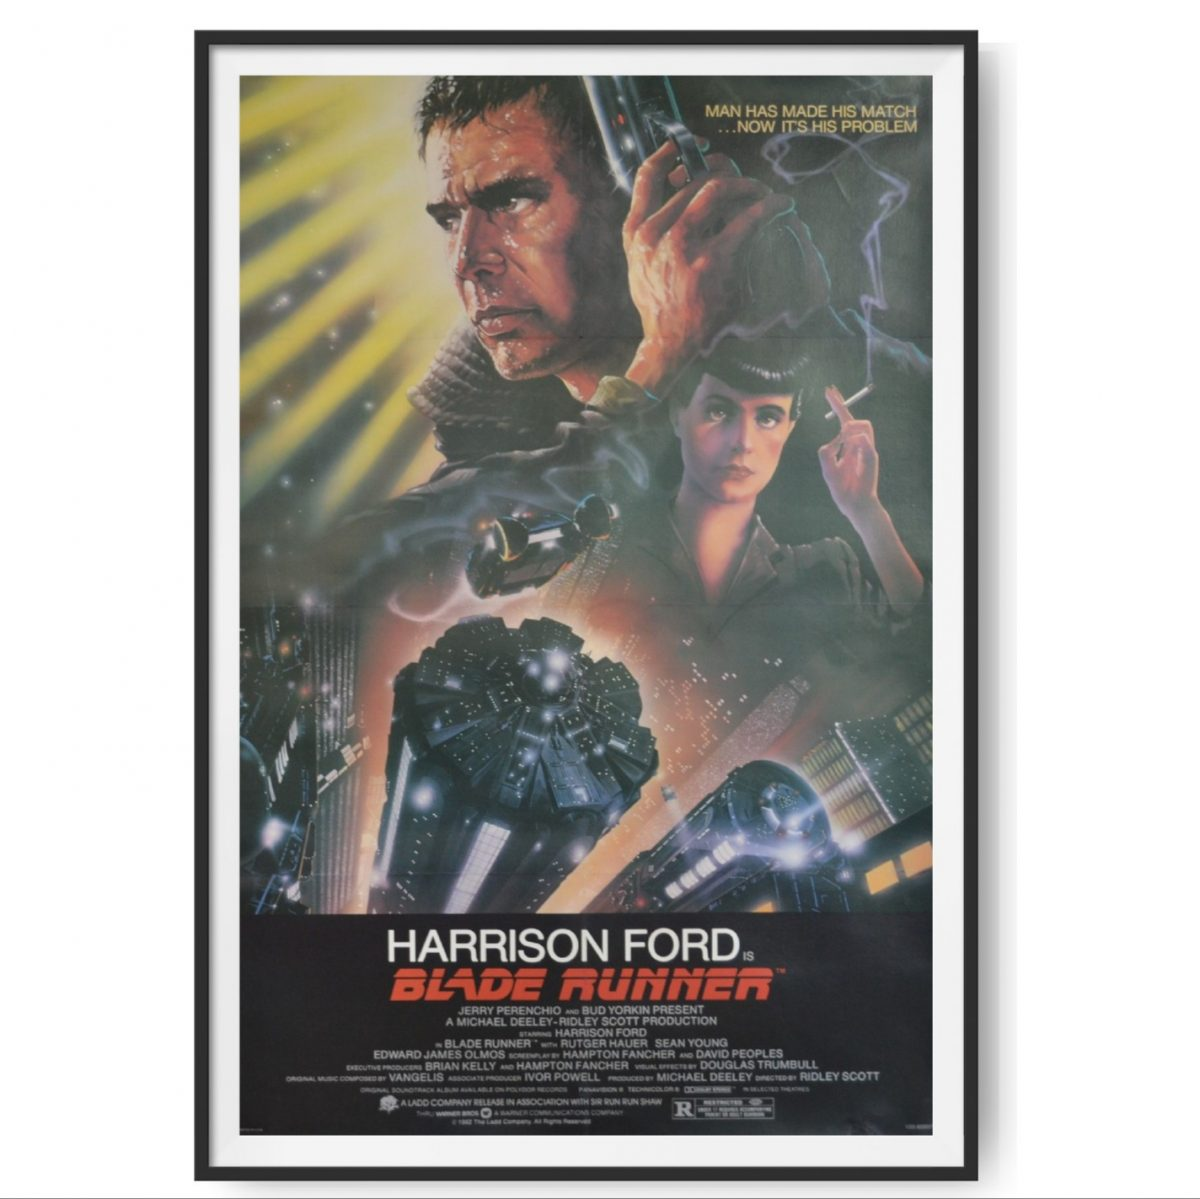 This is a US One Sheet poster for the film Blade Runner. The poster shows Harrison Ford.